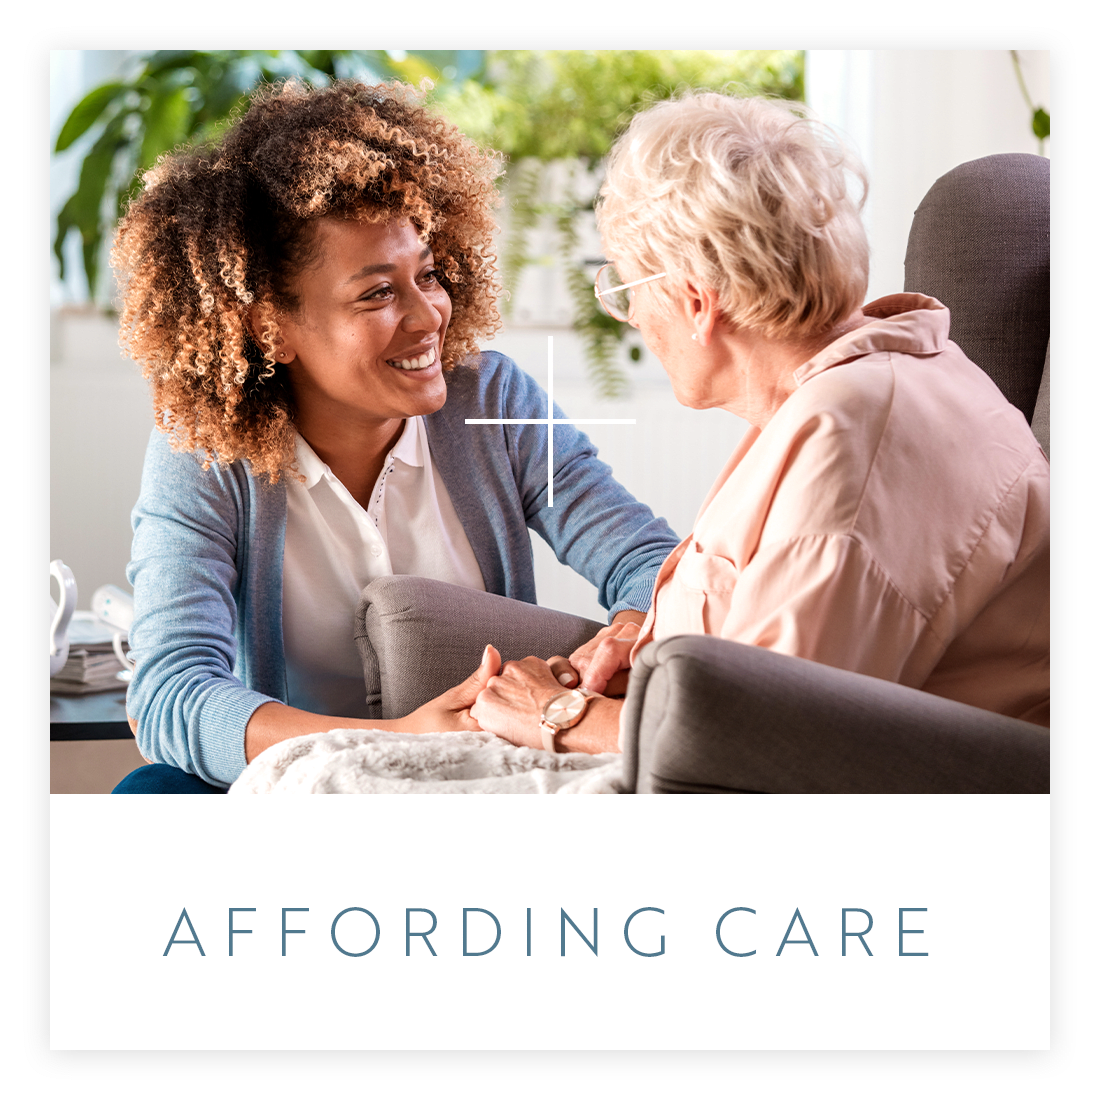 Learn about affording care at Claremont Place in Claremont, California